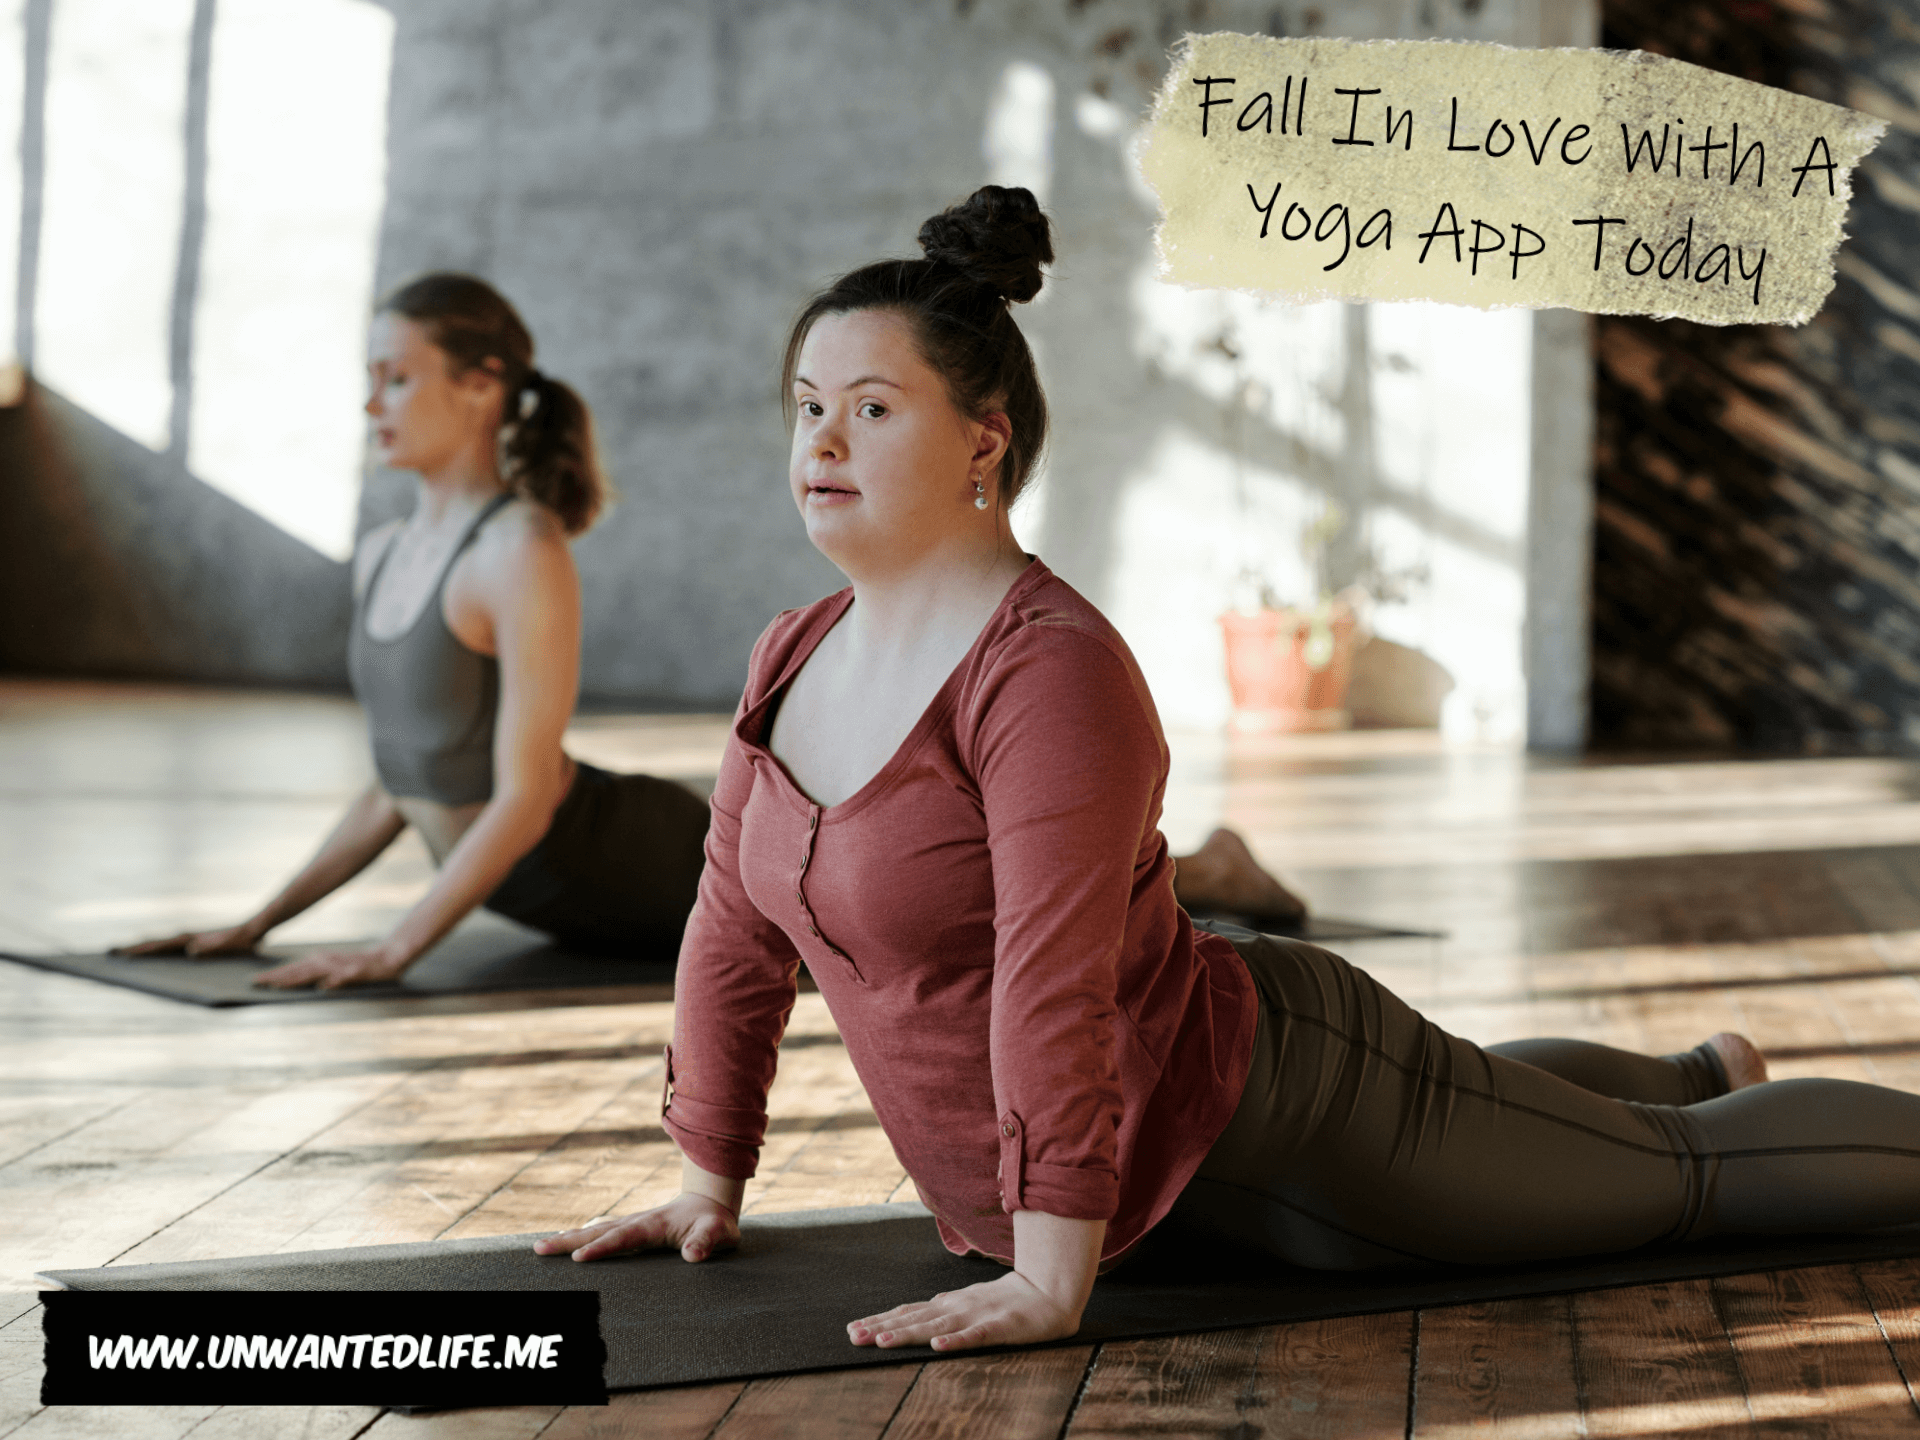 A phot of two women, one with Down's syndrome, doing yoga to represent the topic of the article - Fall In Love With A Yoga App Today